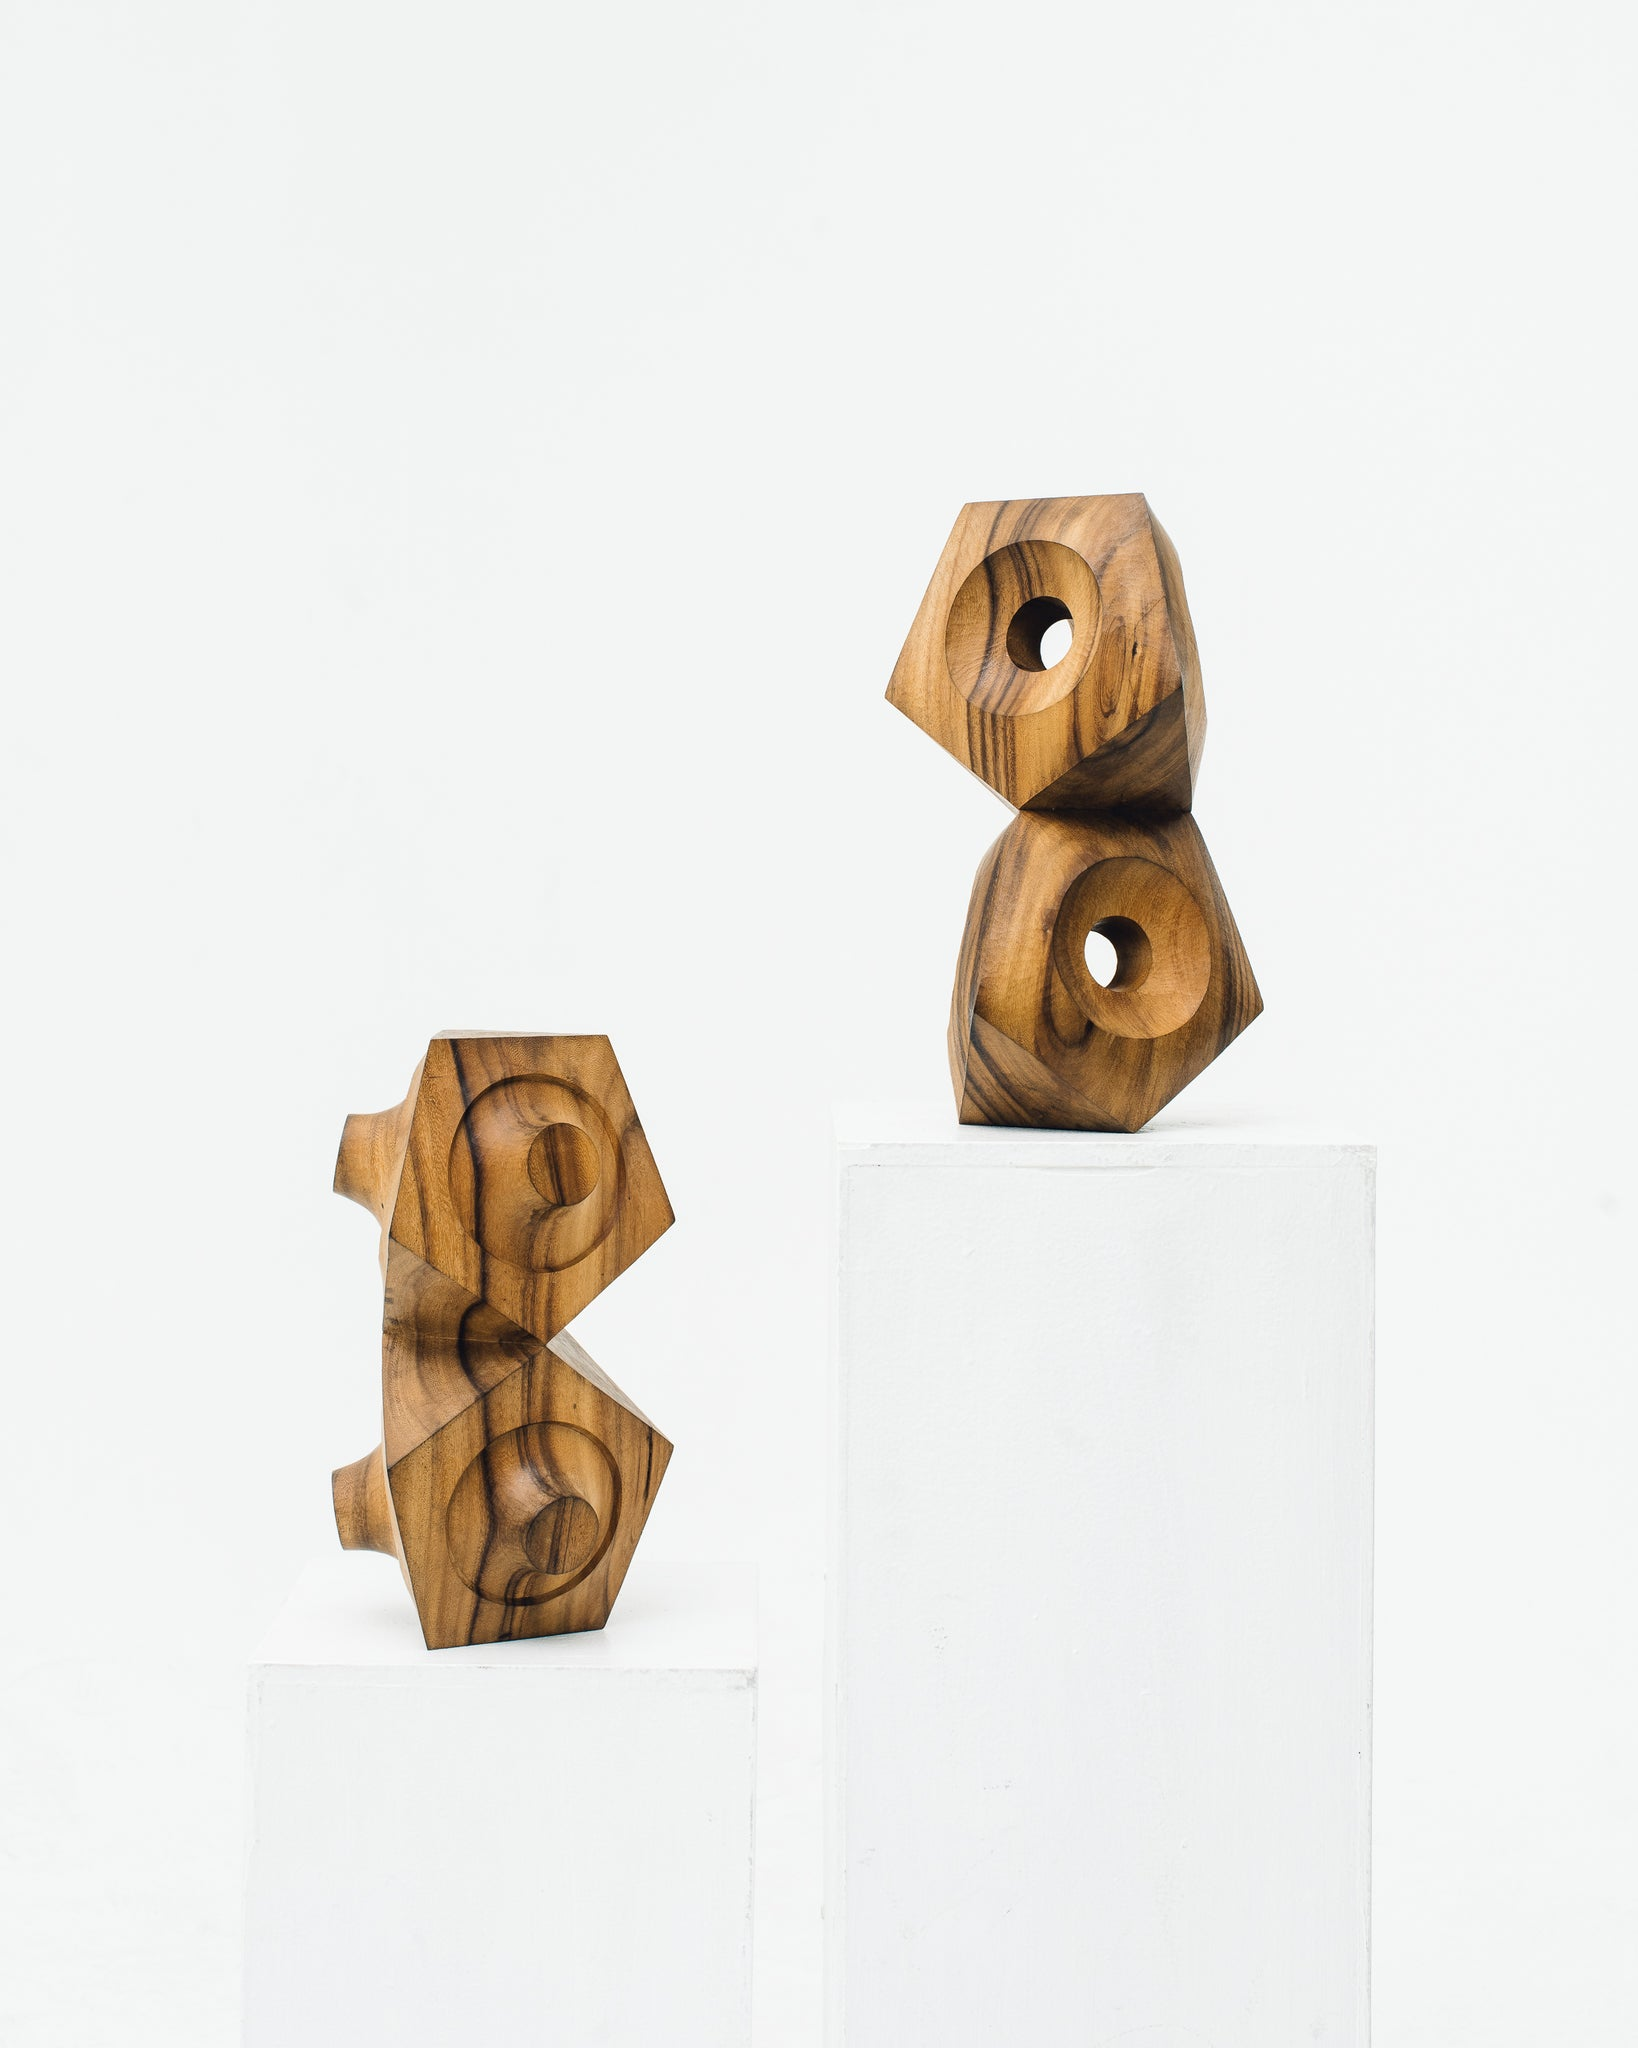 Aleph Geddis Wood Sculpture AG-1016